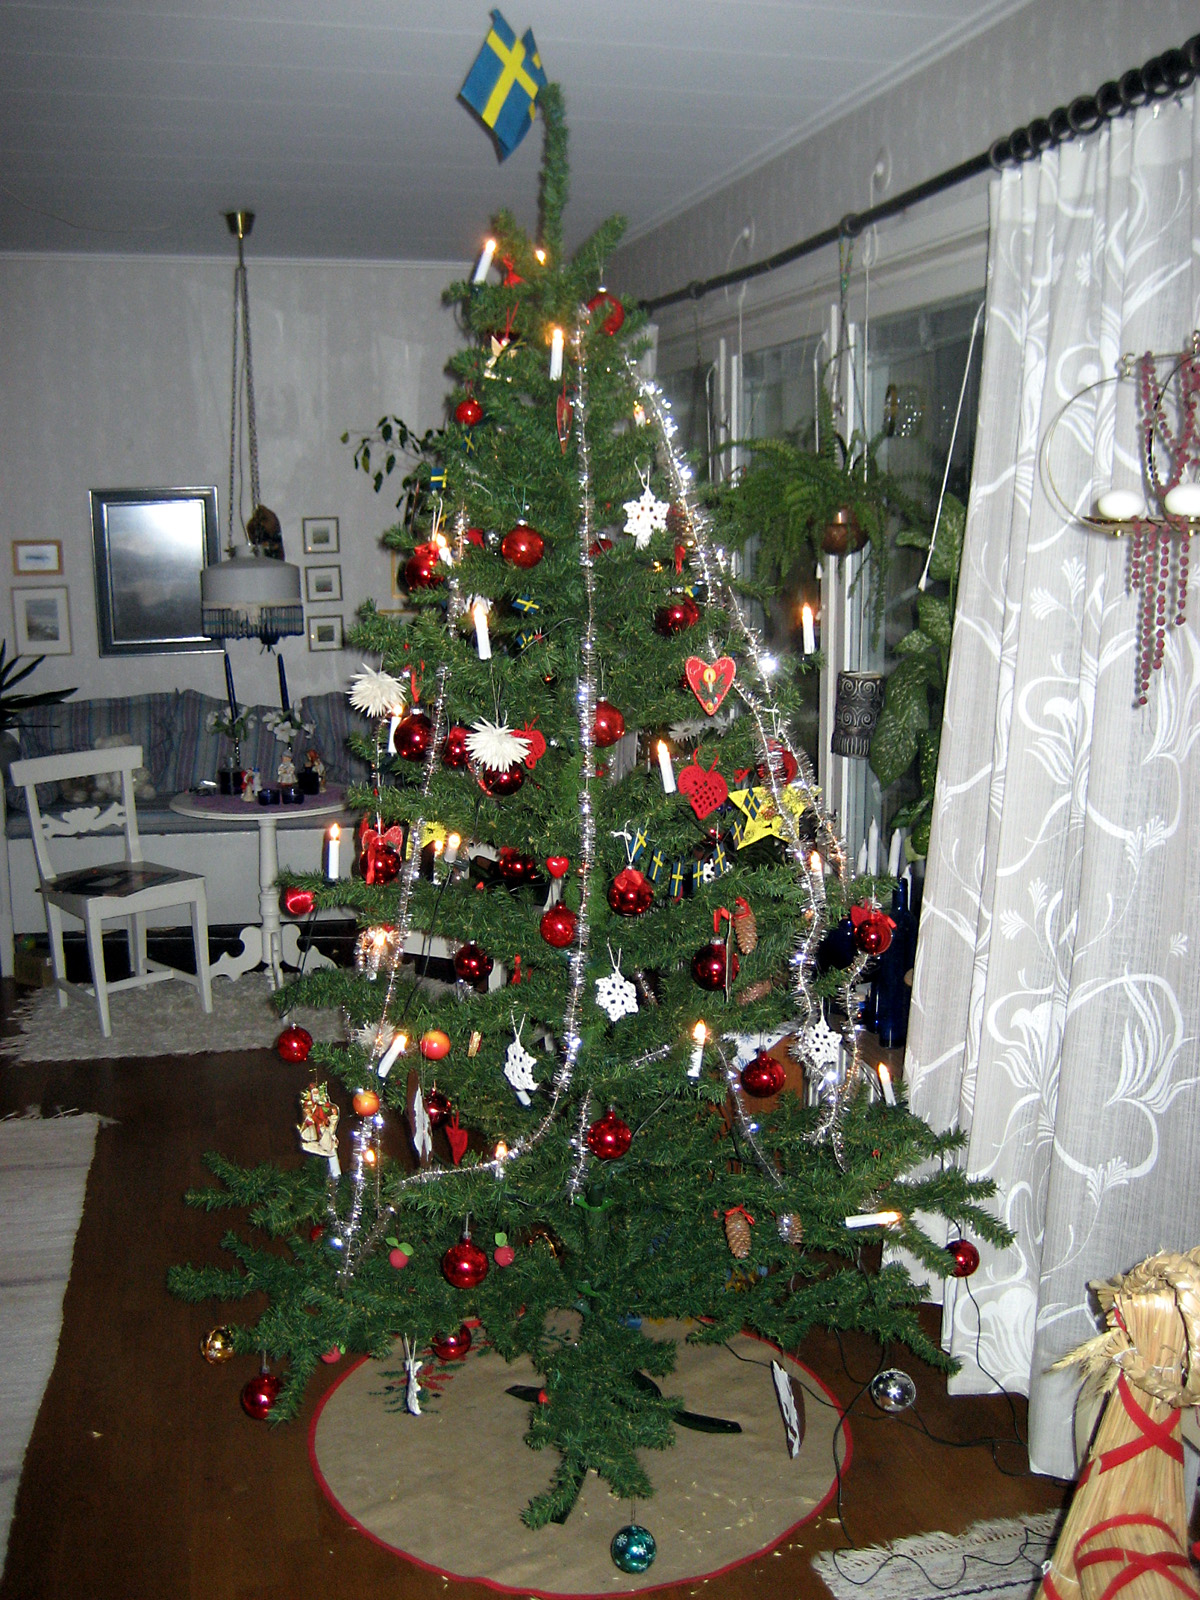 File:Christmas tree in Sweden.jpg - Wikimedia Commons